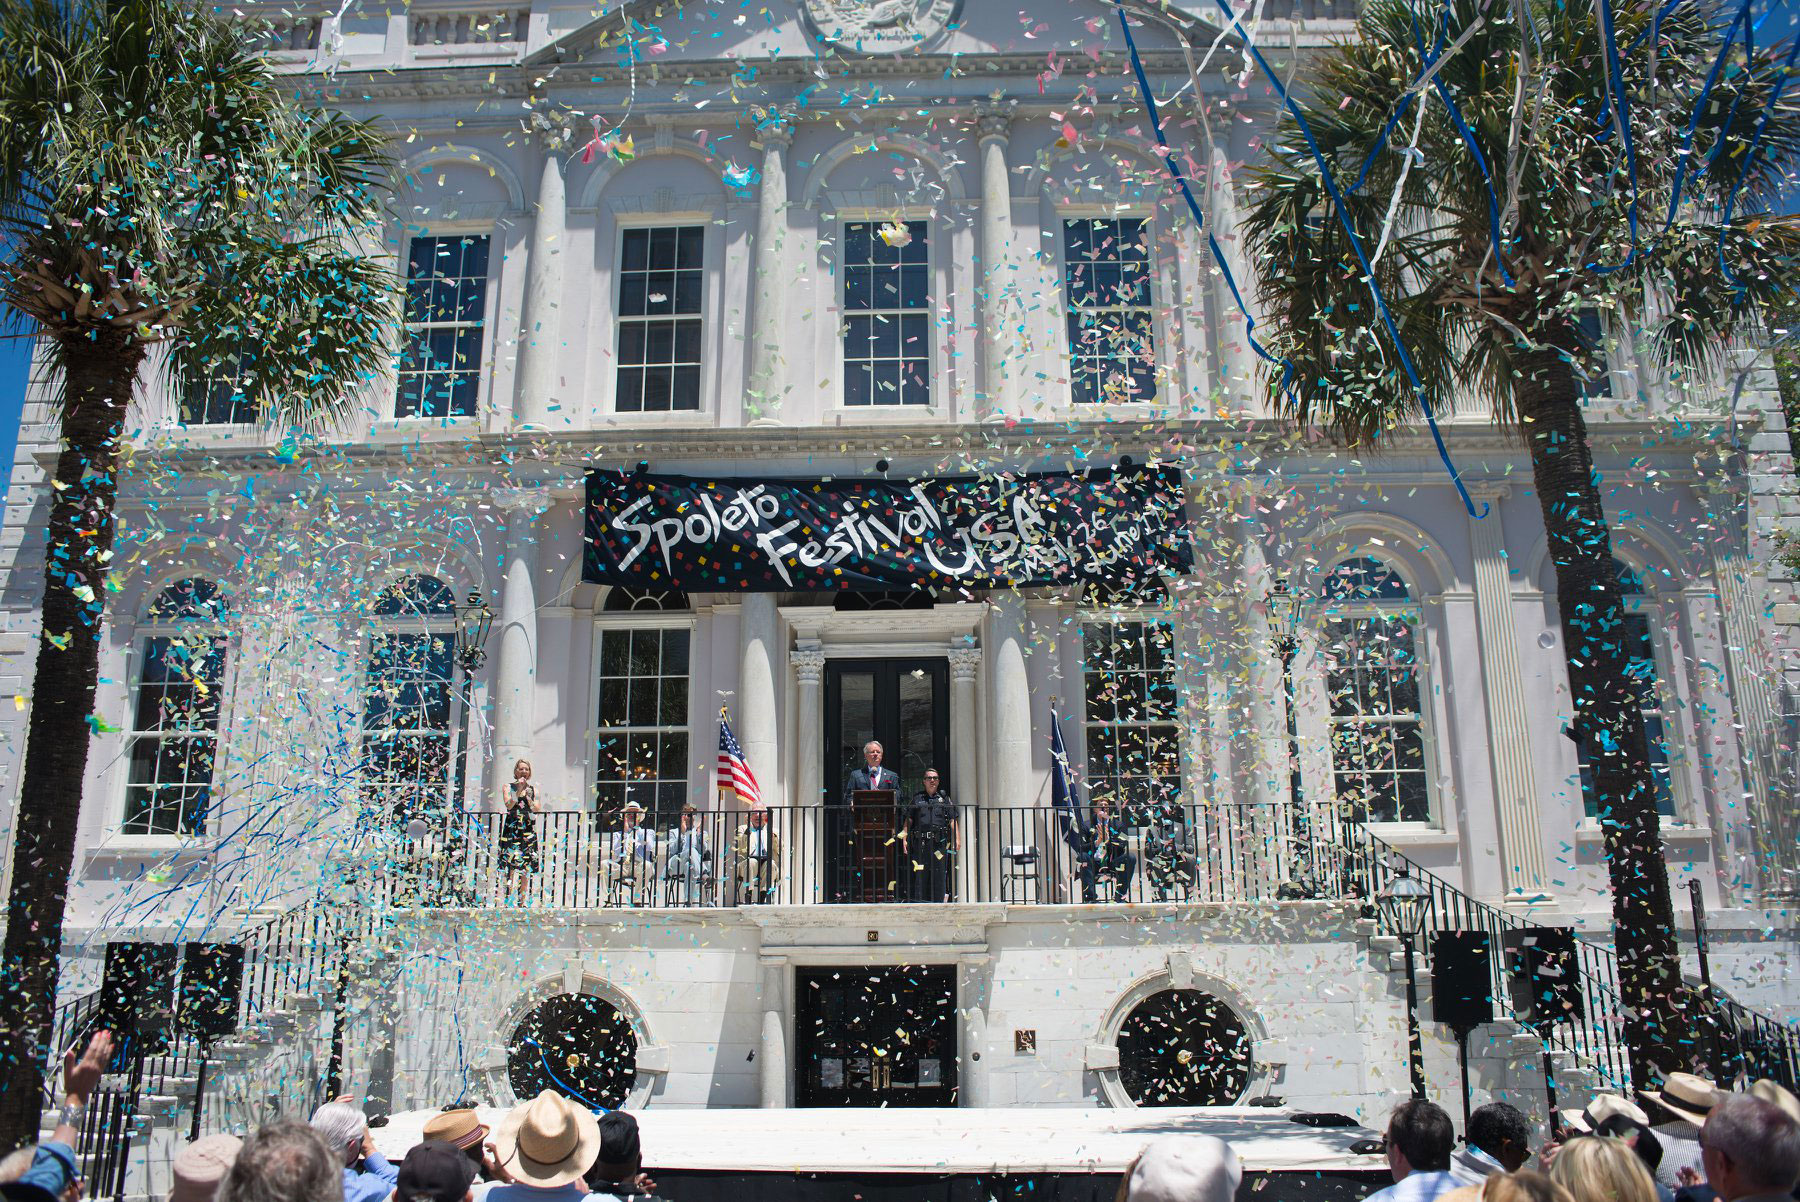 South's Best Festival: Spoleto Festival USA